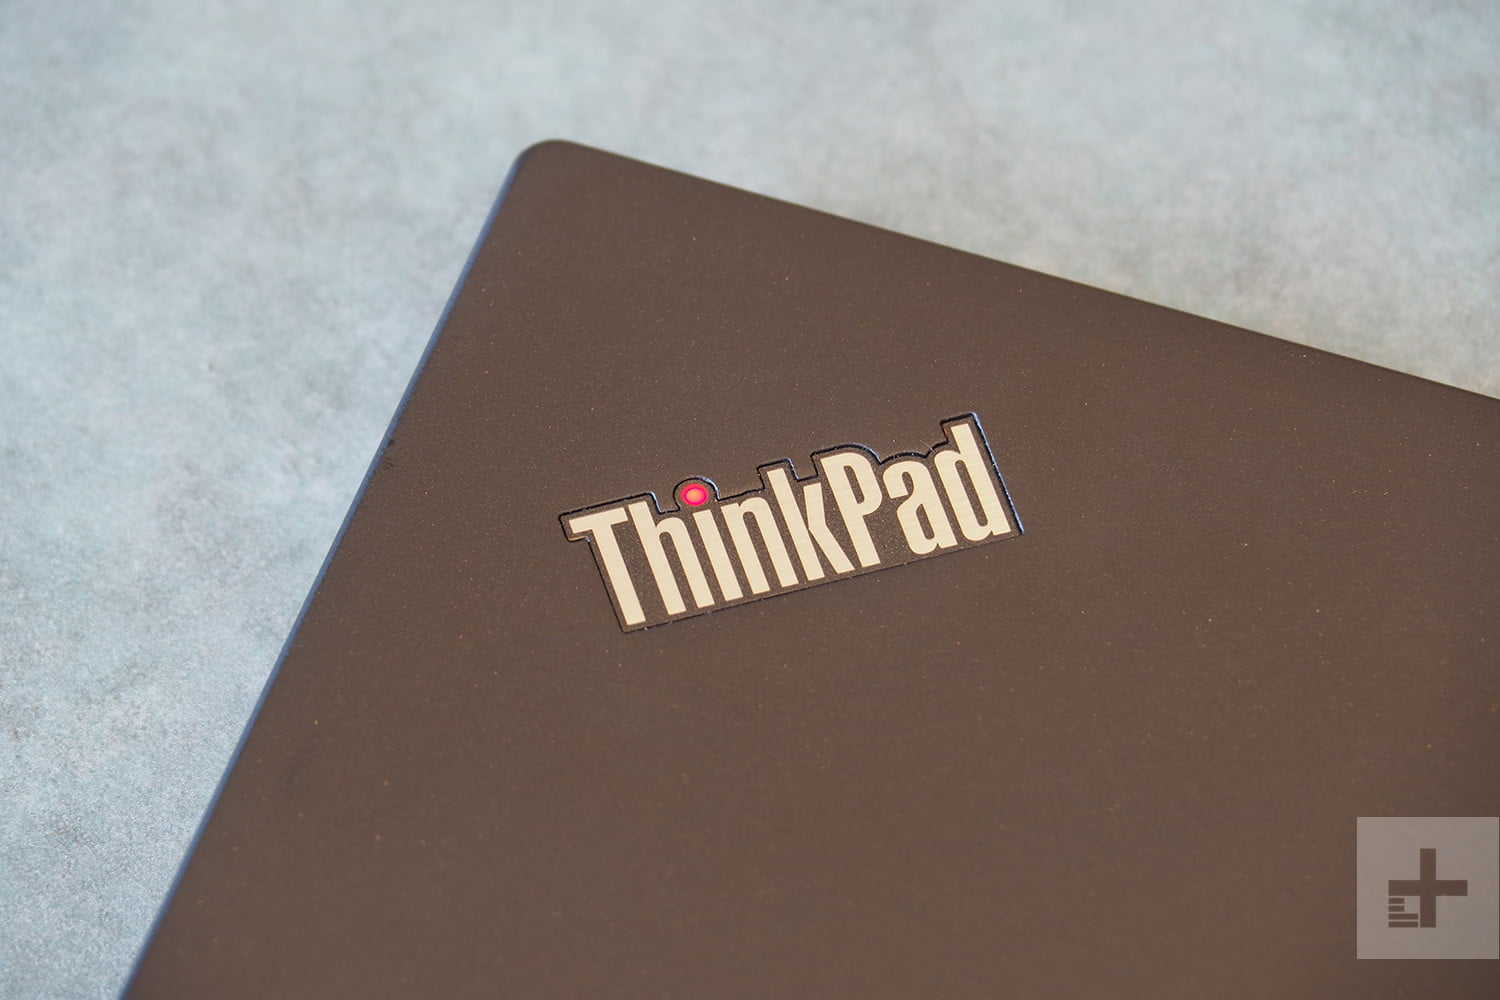 lenovo thinkpad t480s model logo